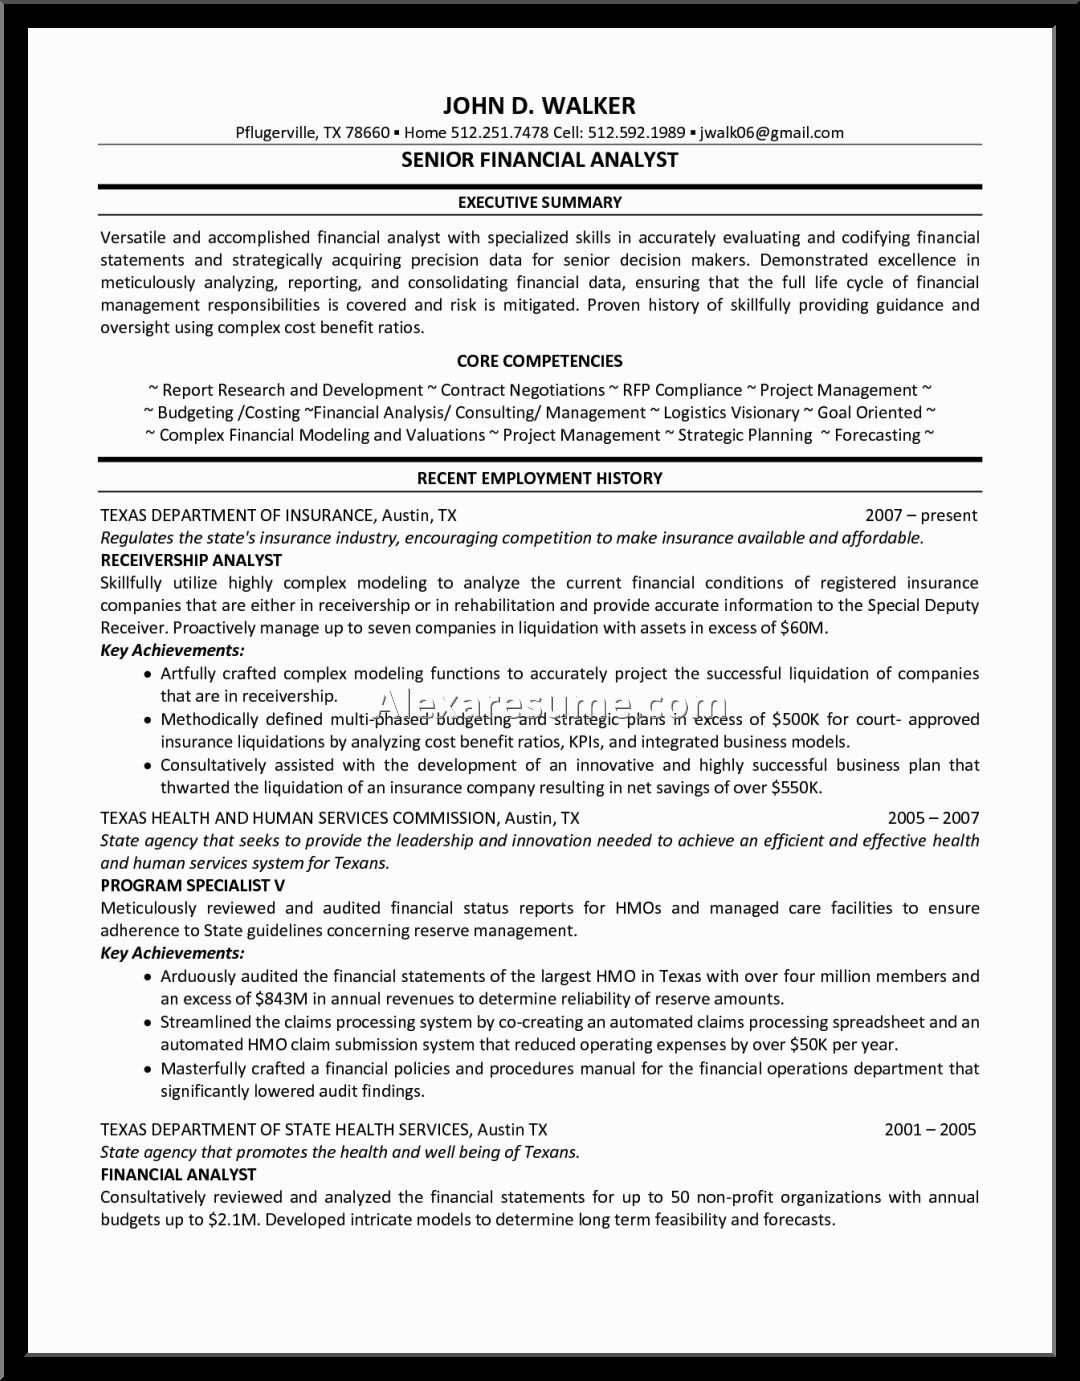 Resume Analyst Analyst Resume Financial Sample Formatting Ideas Mistakes Faq About .